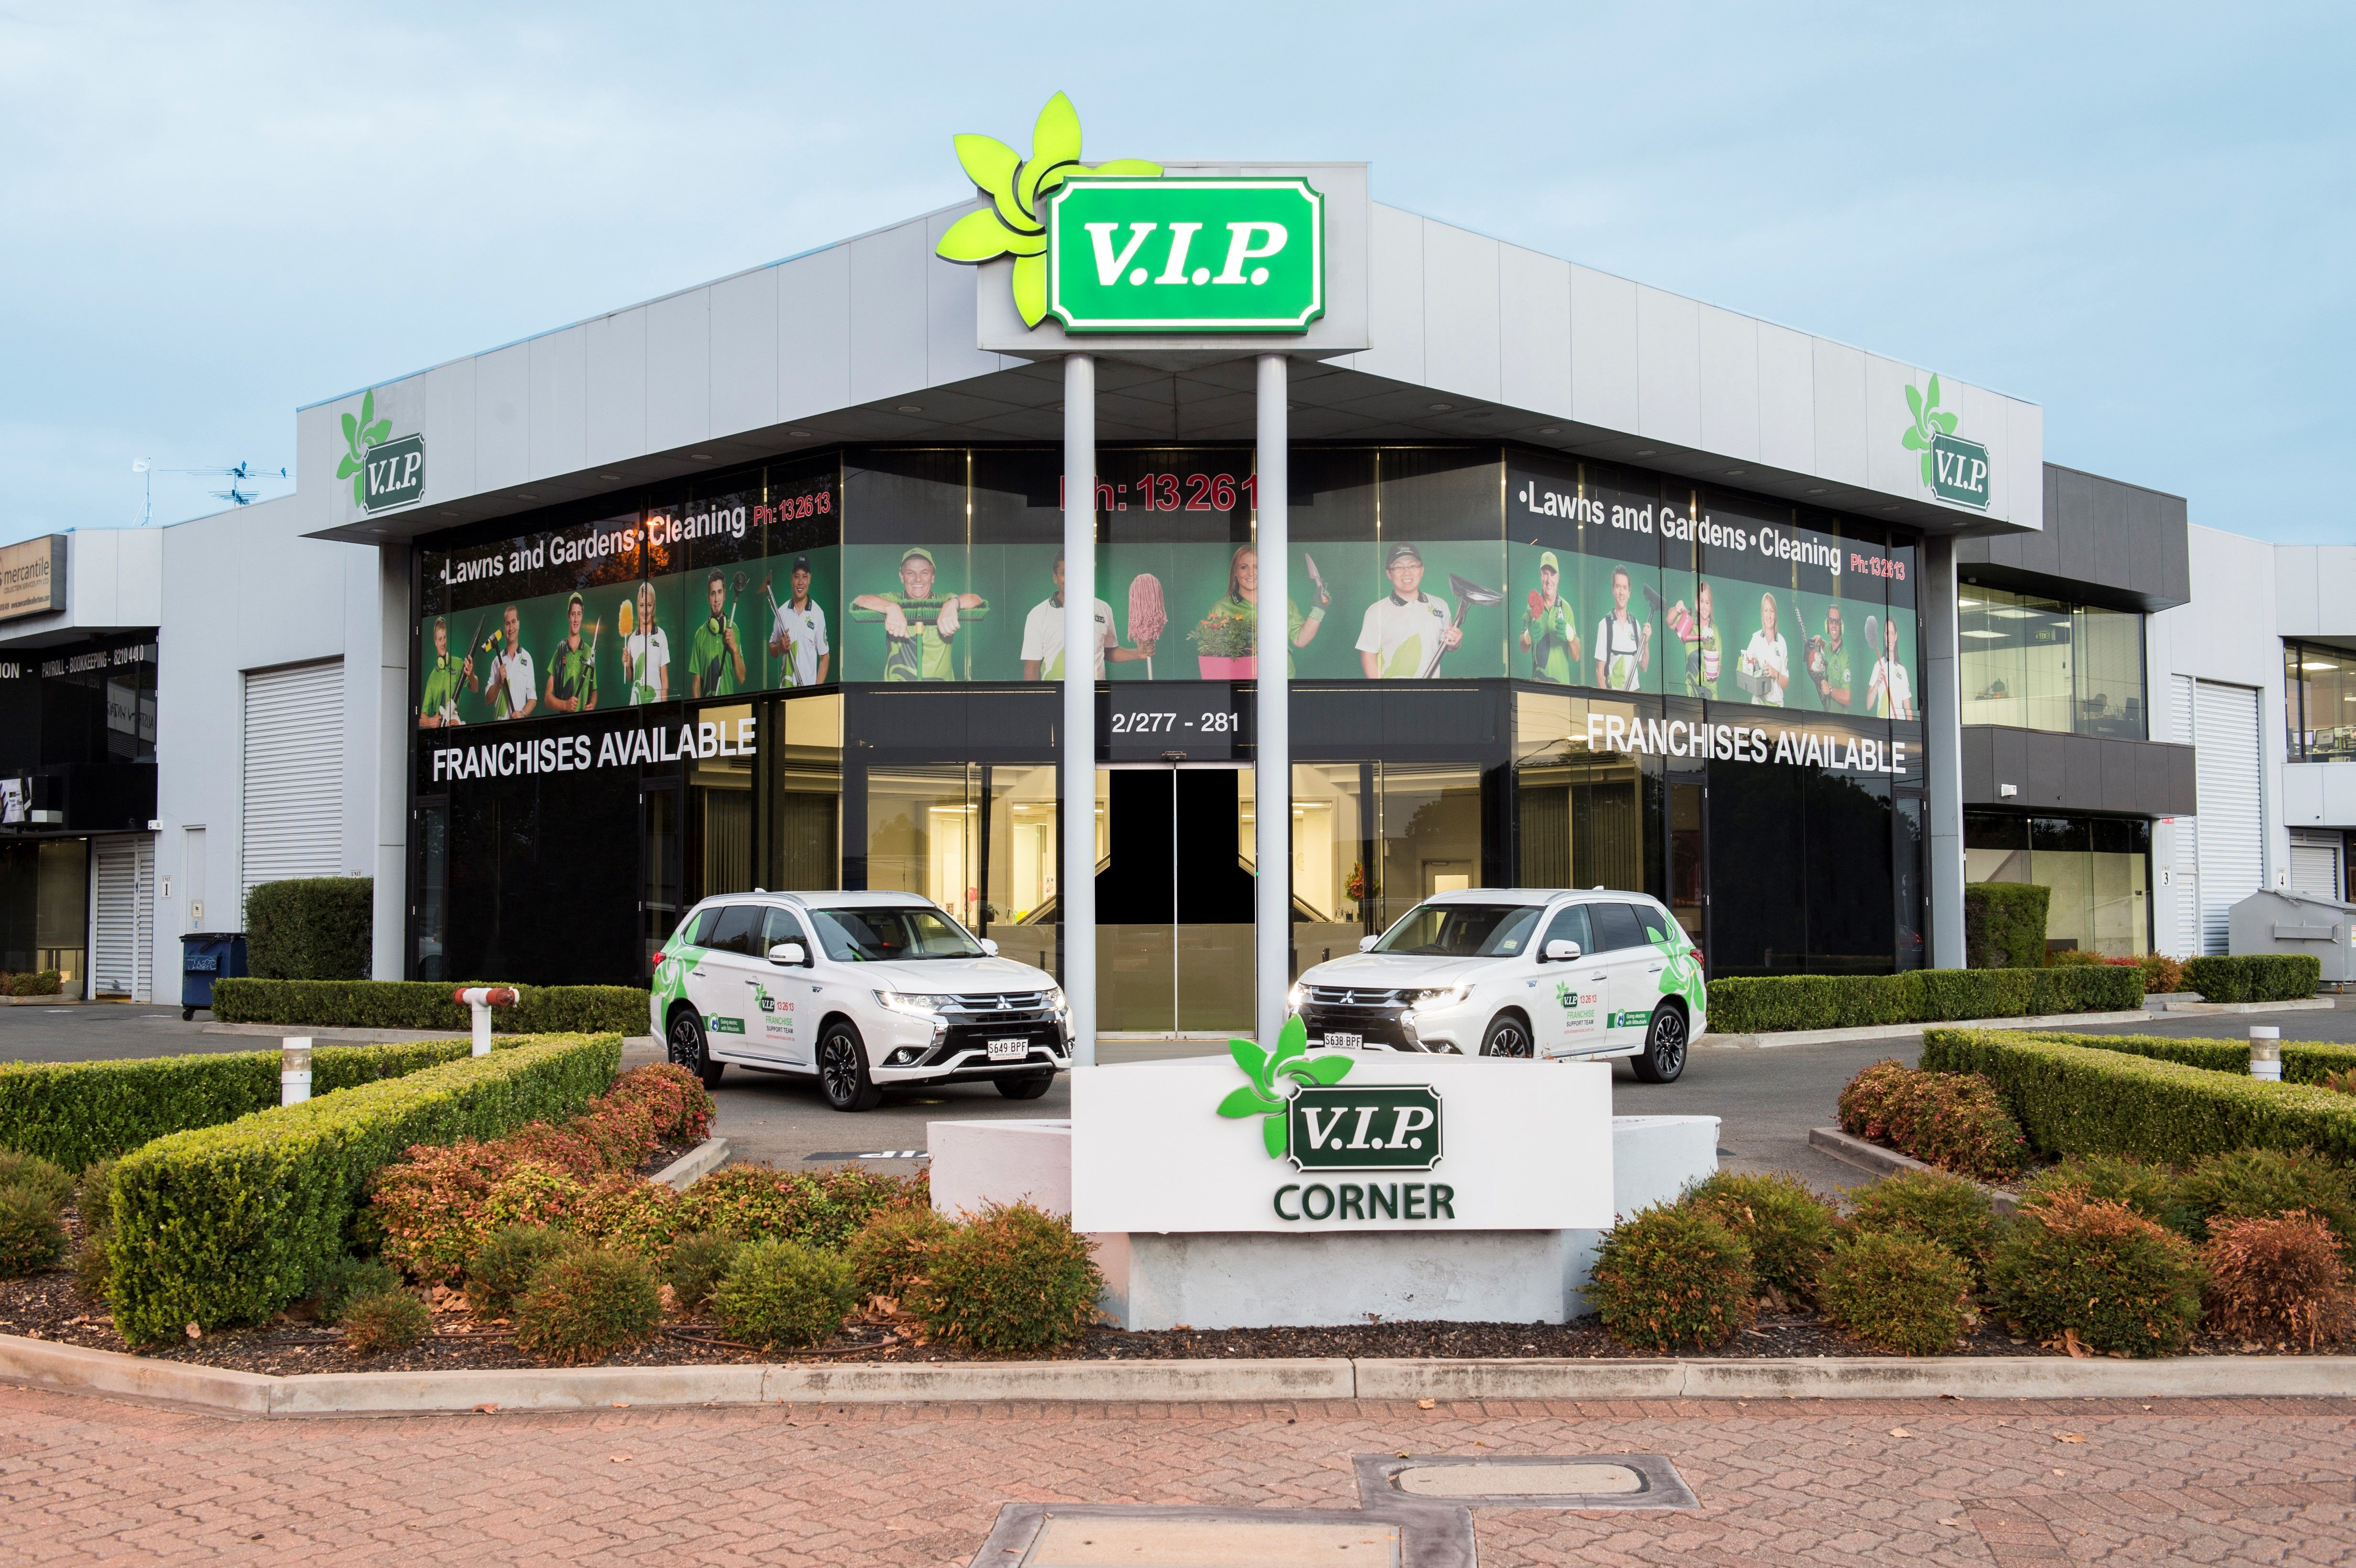 V.I.P. celebrates 40 years in business | Inside Franchise Business